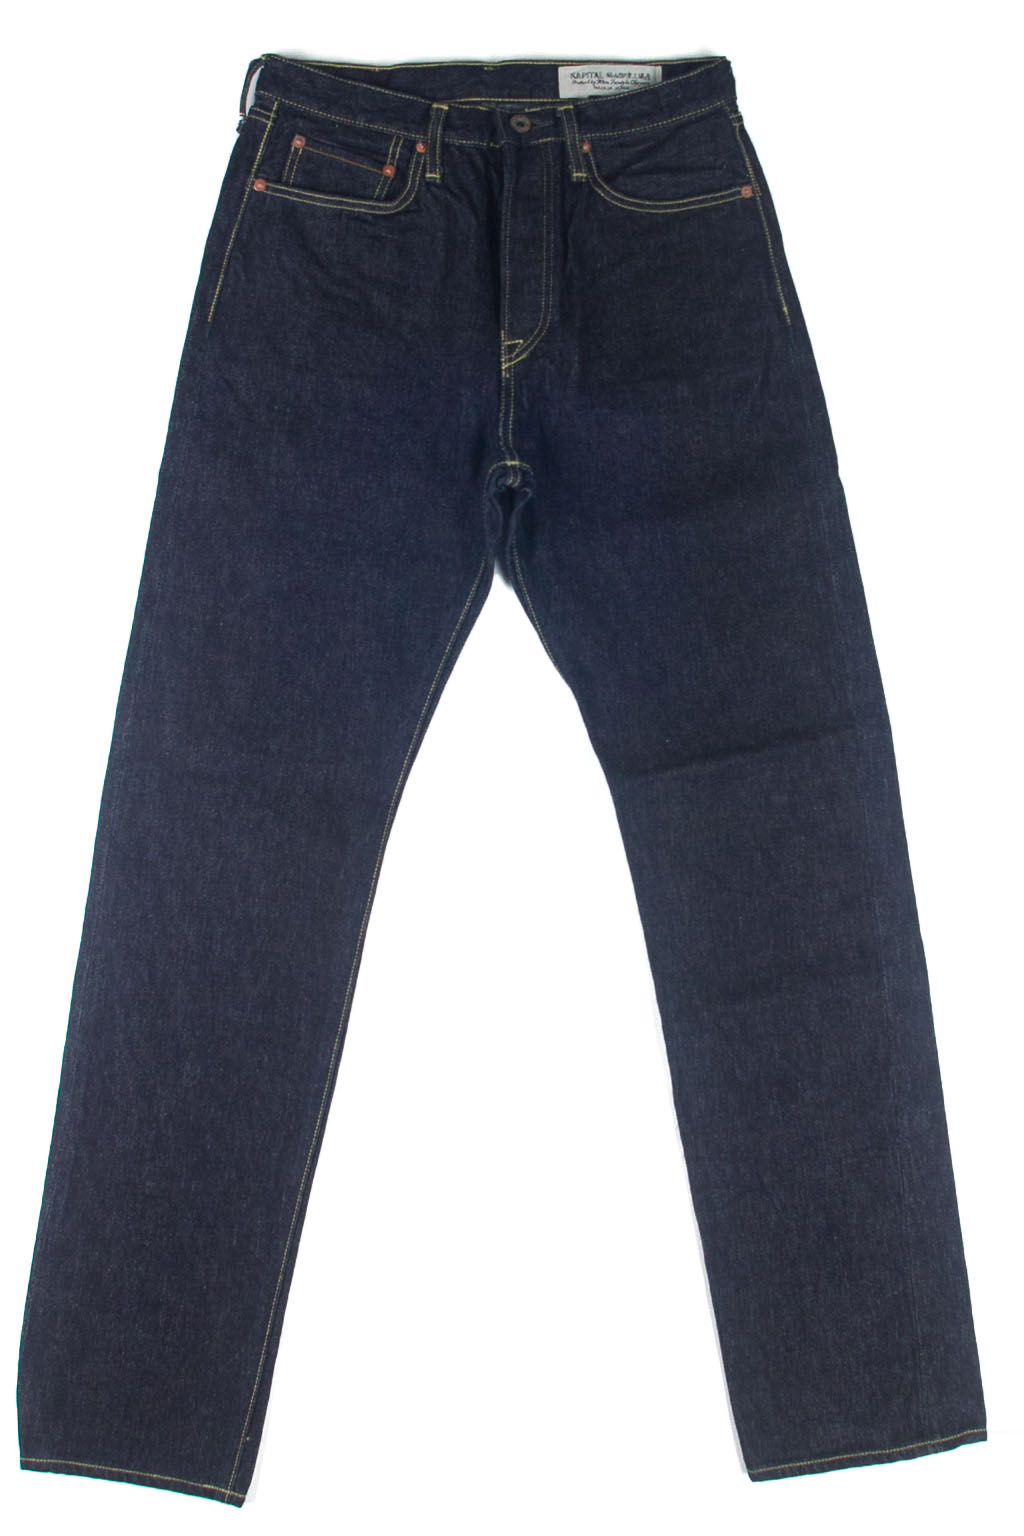 14oz Denim 5P Monkey Cisco - One Wash